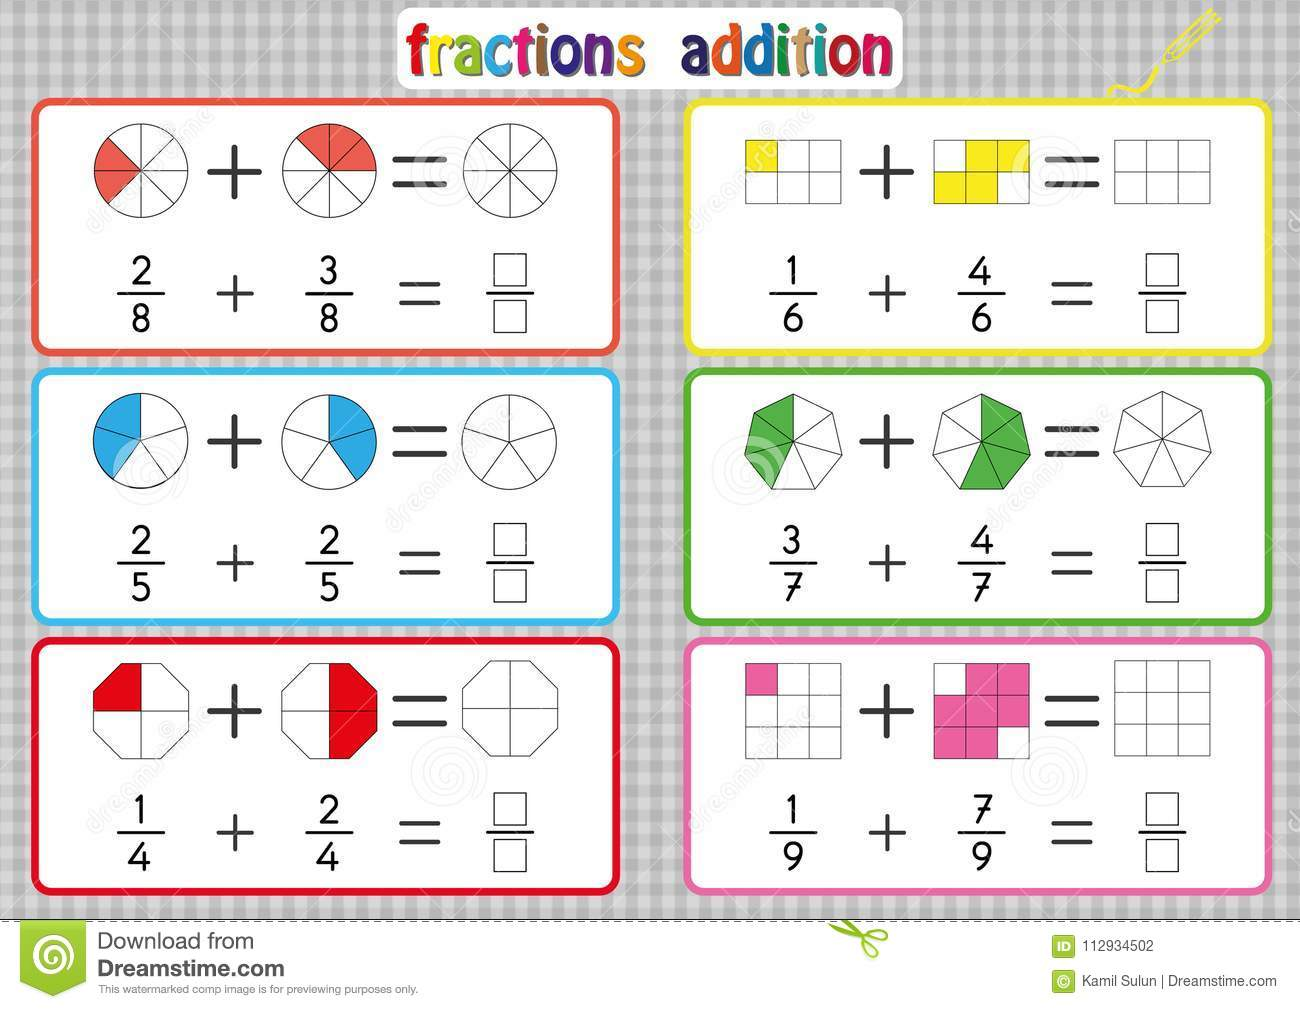 Fractions Addition Printable Fractions Worksheets For